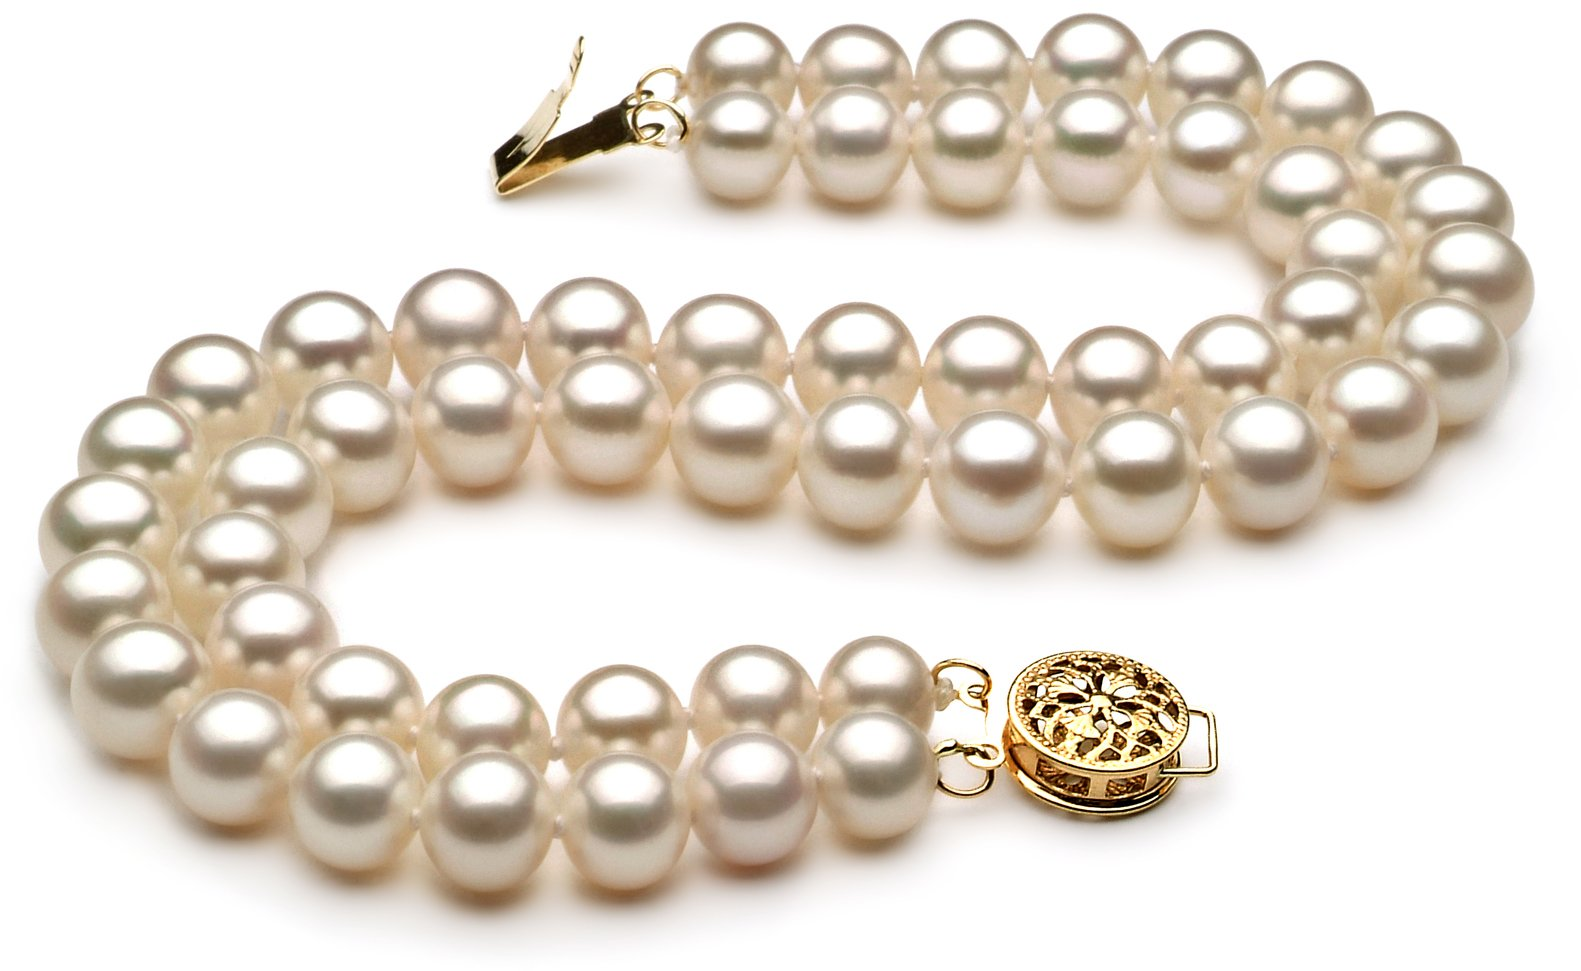 PearlsOnly - Liska White 6-7mm Double Strand AA Quality Freshwater Cultured Pearl Set-18 in Princess length by PearlsOnly (Image #3)